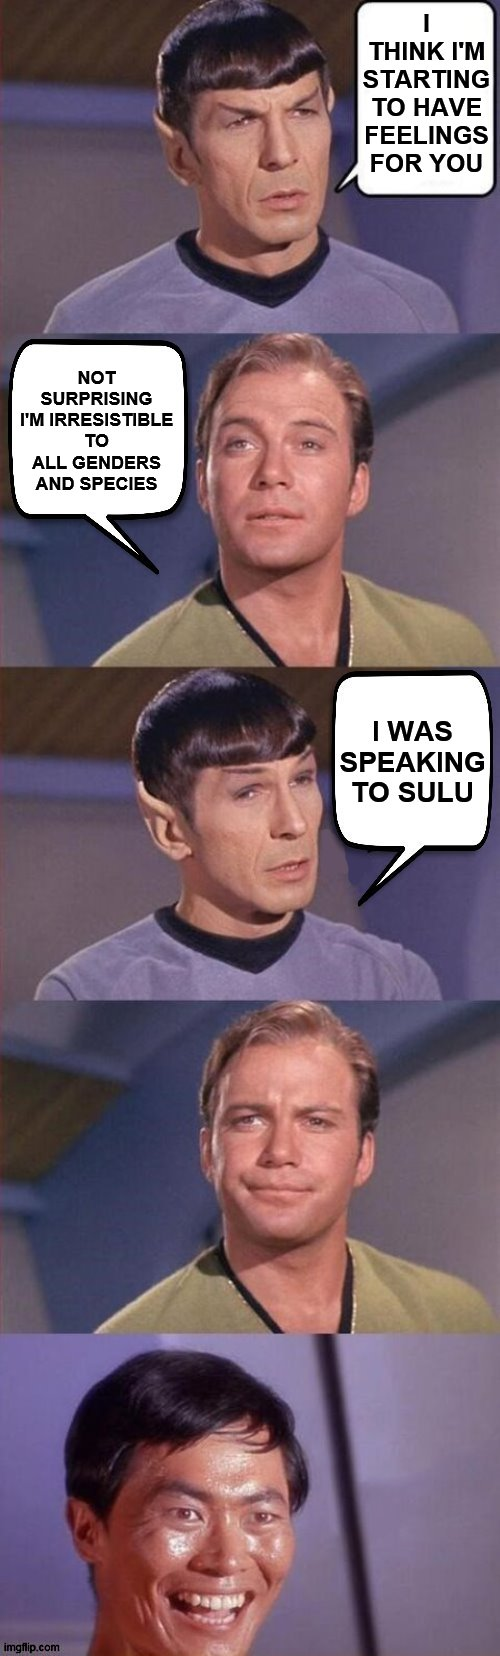 Spock Burns Kirk |  I THINK I'M STARTING TO HAVE FEELINGS FOR YOU; NOT SURPRISING I'M IRRESISTIBLE TO ALL GENDERS AND SPECIES; I WAS SPEAKING TO SULU | image tagged in spock burns kirk,sulu,star trek,captain kirk,giveuahint,dashhopes | made w/ Imgflip meme maker